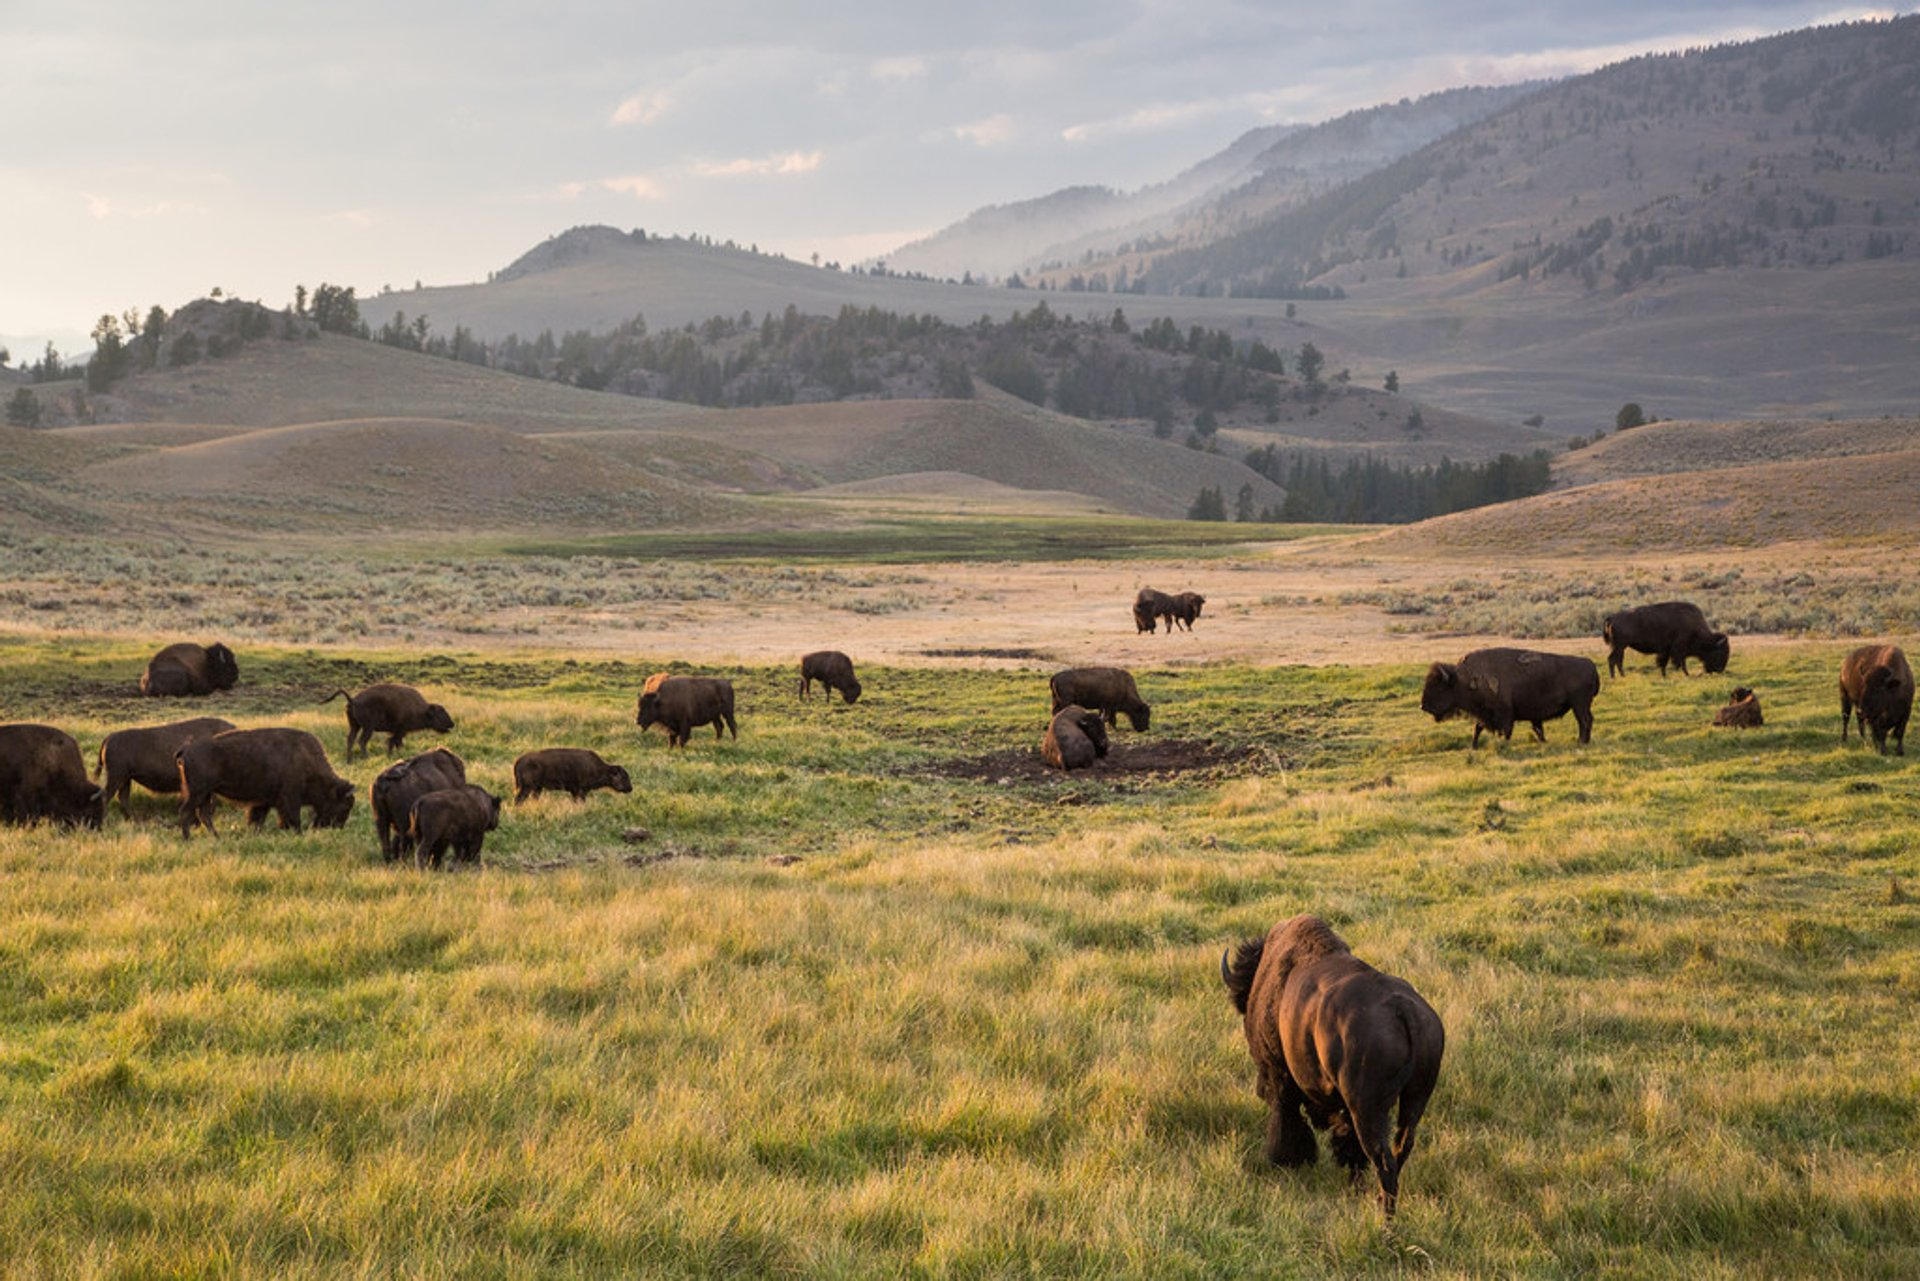 Bison Mating Season in Yellowstone National Park - Best Season 2020